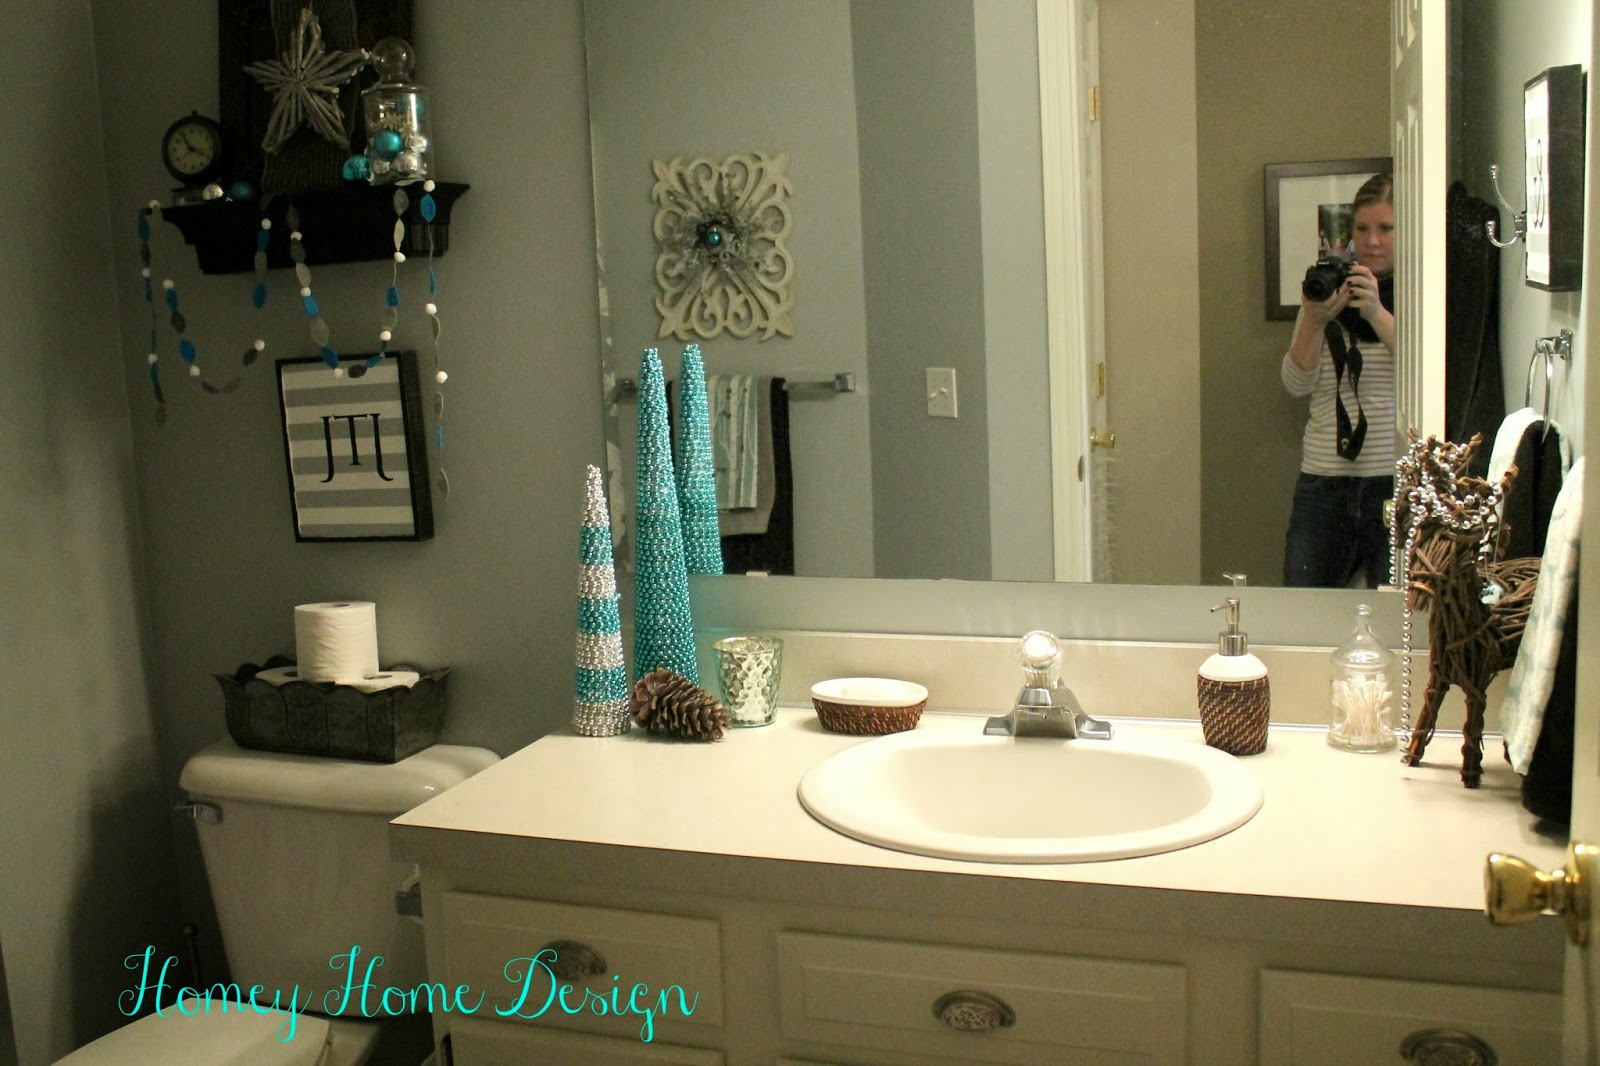 Homey home design bathroom christmas ideas for Home bathroom ideas